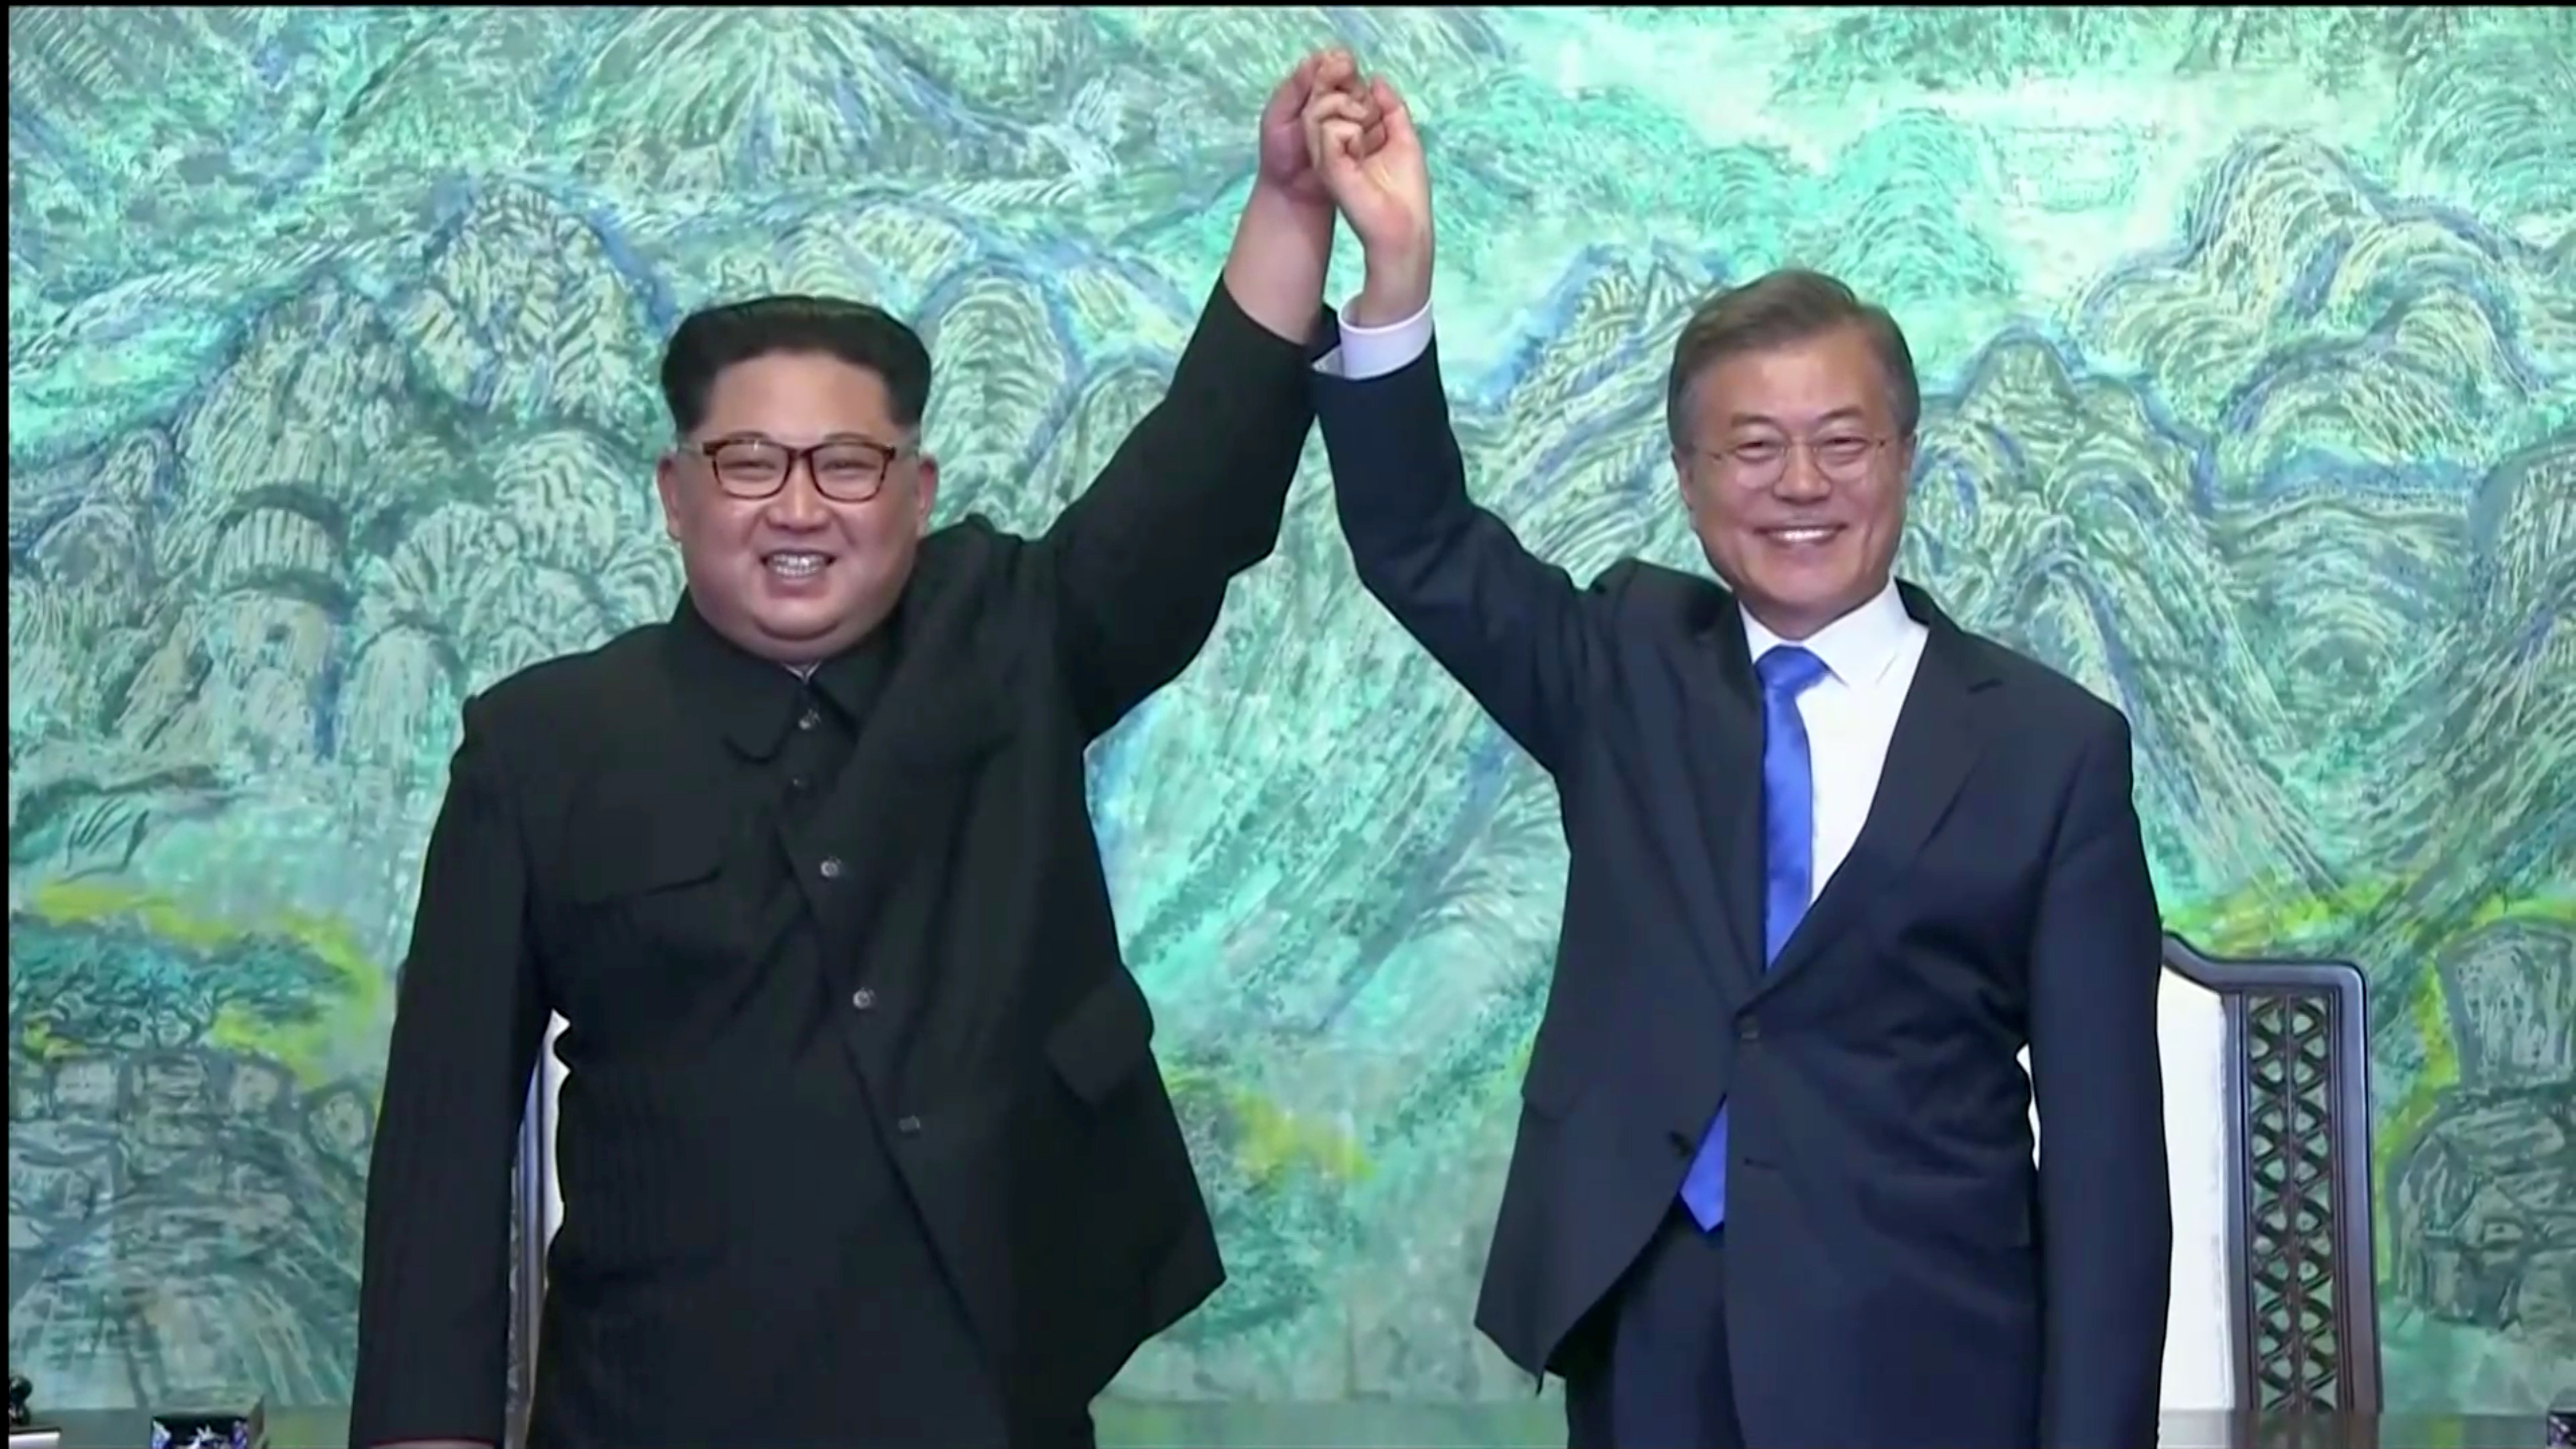 South Korean President Moon Jae-in and North Korean leader Kim Jong Un gesture after signing agreements during the inter-Korean summit at the truce village of Panmunjom, in this still frame taken from video, South Korea April 27, 2018. Host Broadcaster via REUTERS TV  ATTENTION EDITORS - THIS IMAGE HAS BEEN PROVIDED BY A THIRD PARTY. NO RESALES. NO ARCHIVES. SOUTH KOREA OUT. - RC14BC77FA20